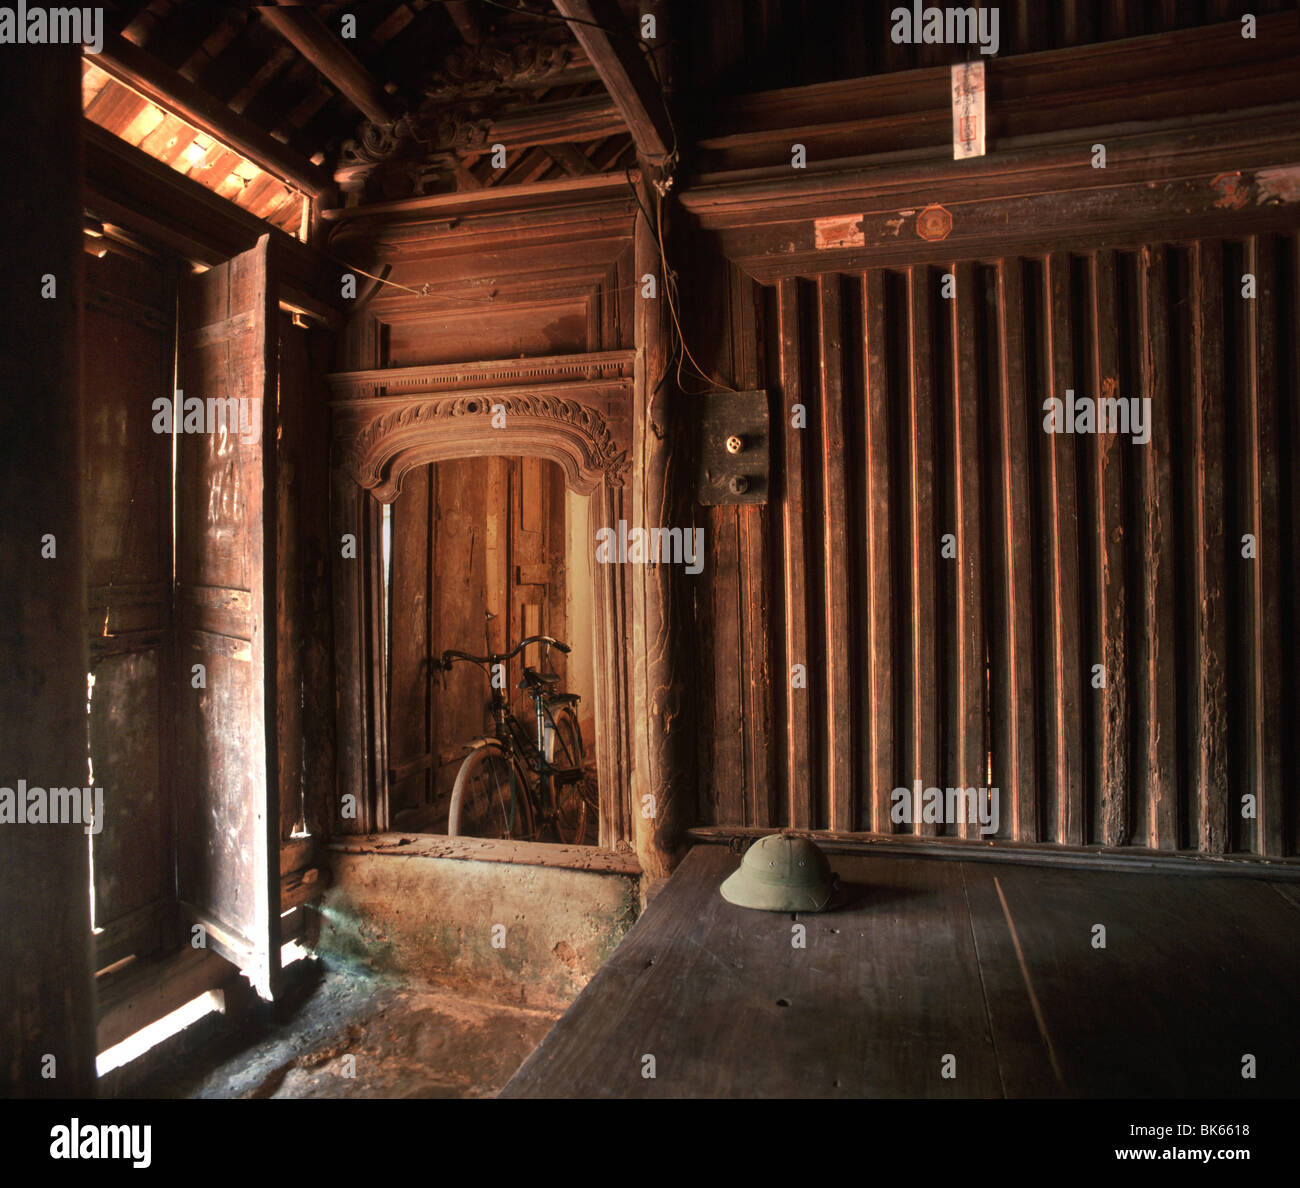 Interior of Mong Phu House, 400 years old, Vietnam, Indochina, Southeast Asia, Asia - Stock Image